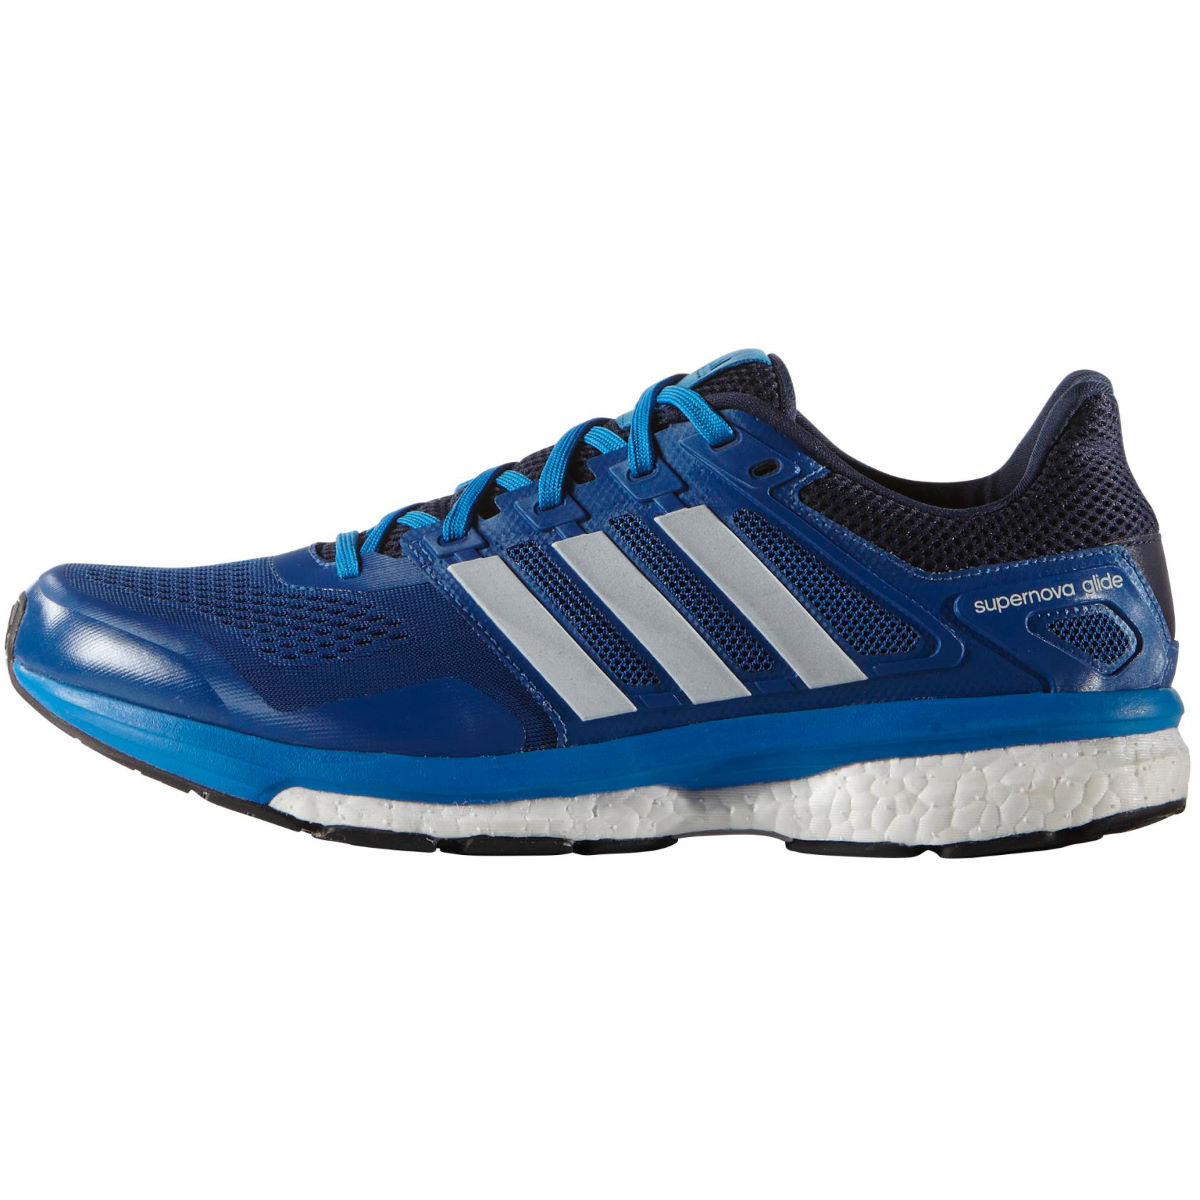 Chaussures Adidas Supernova Glide Boost 8 (PE16) - 7 UK Bleu/Blanc Chaussures de running amorties